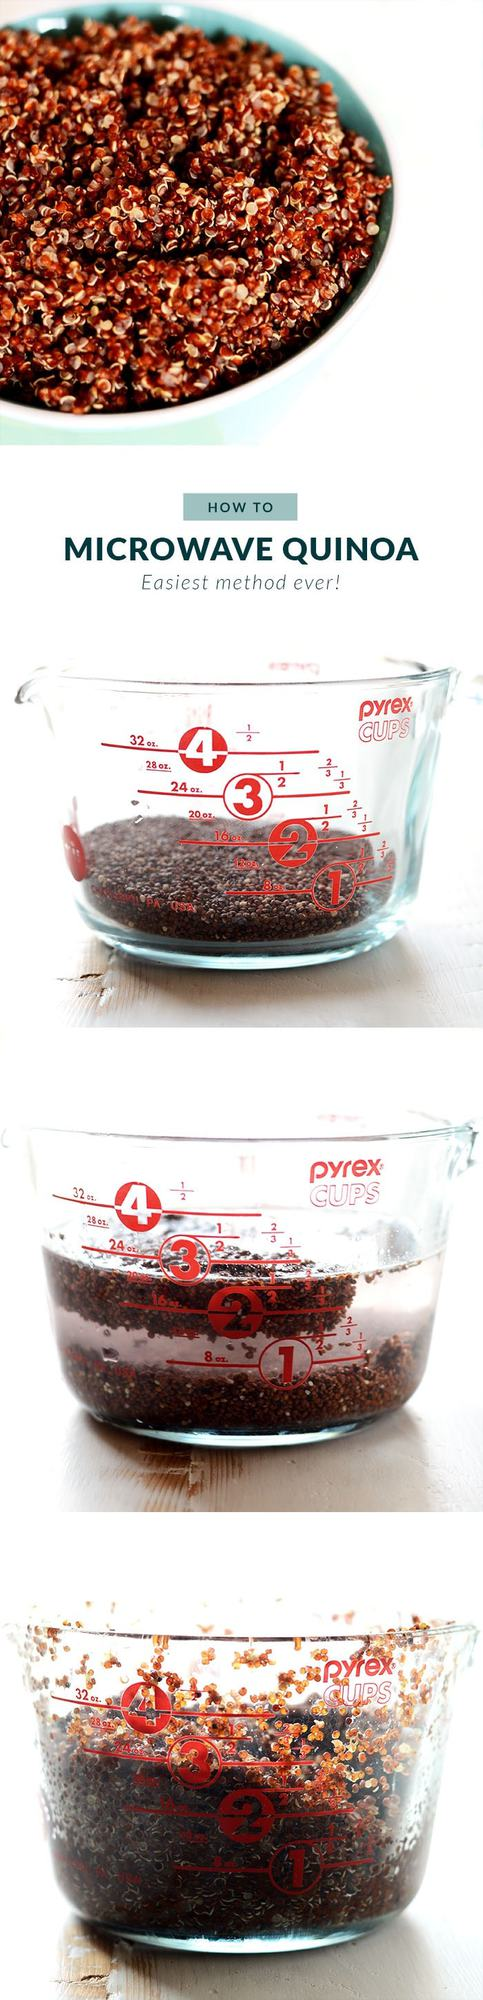 microwave quinoa step by step